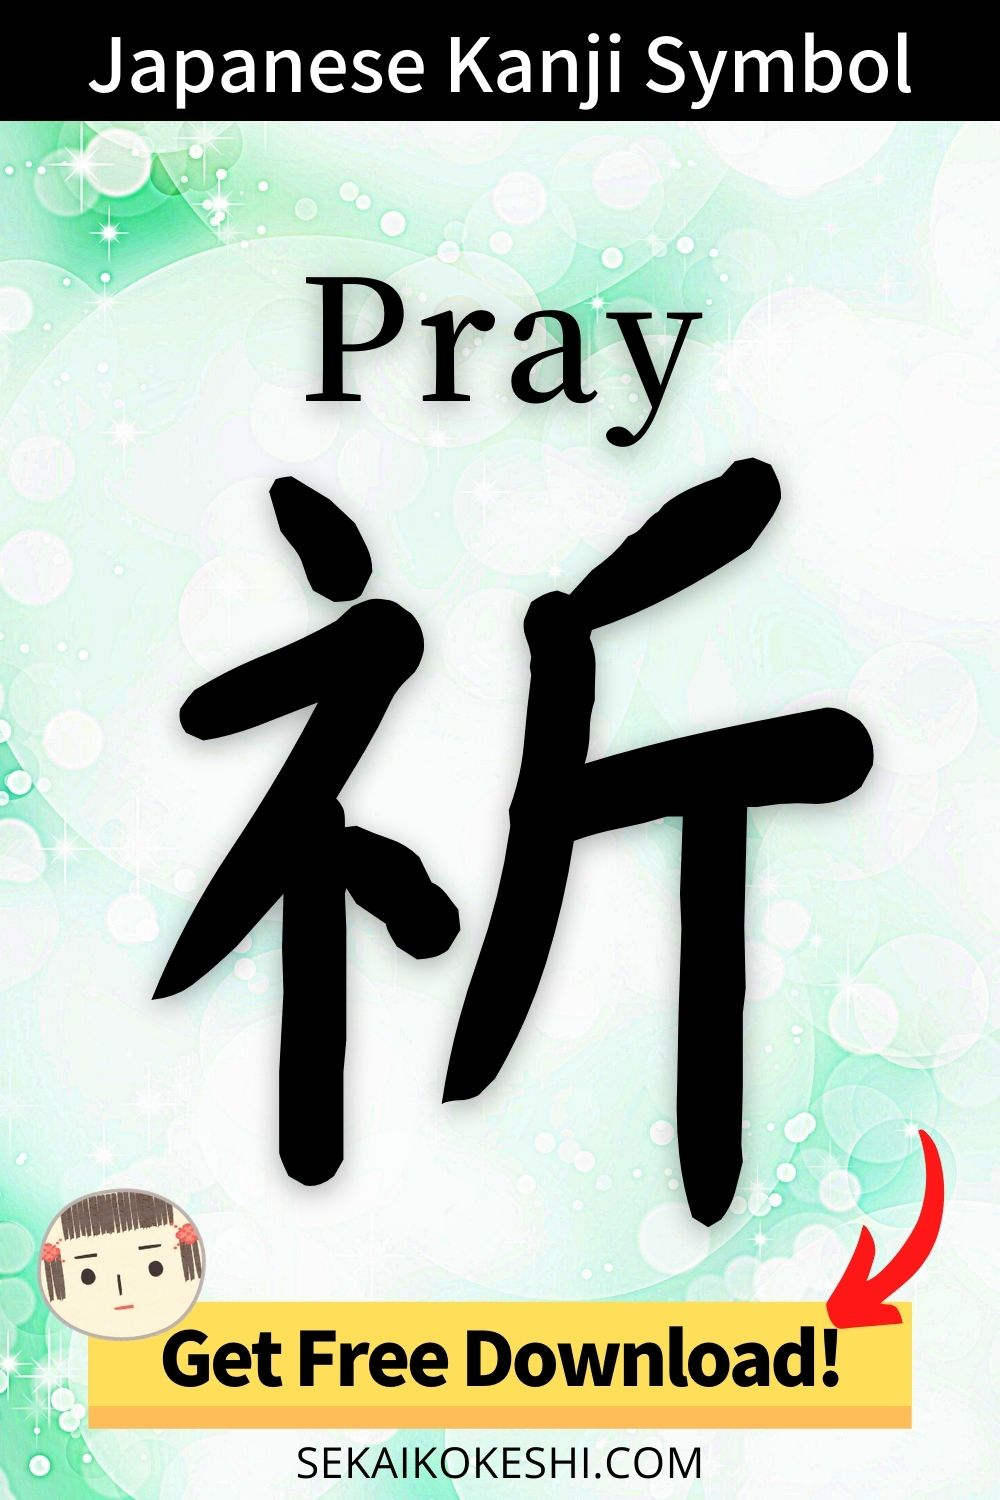 japanese kanji symbol, pray, get free download!